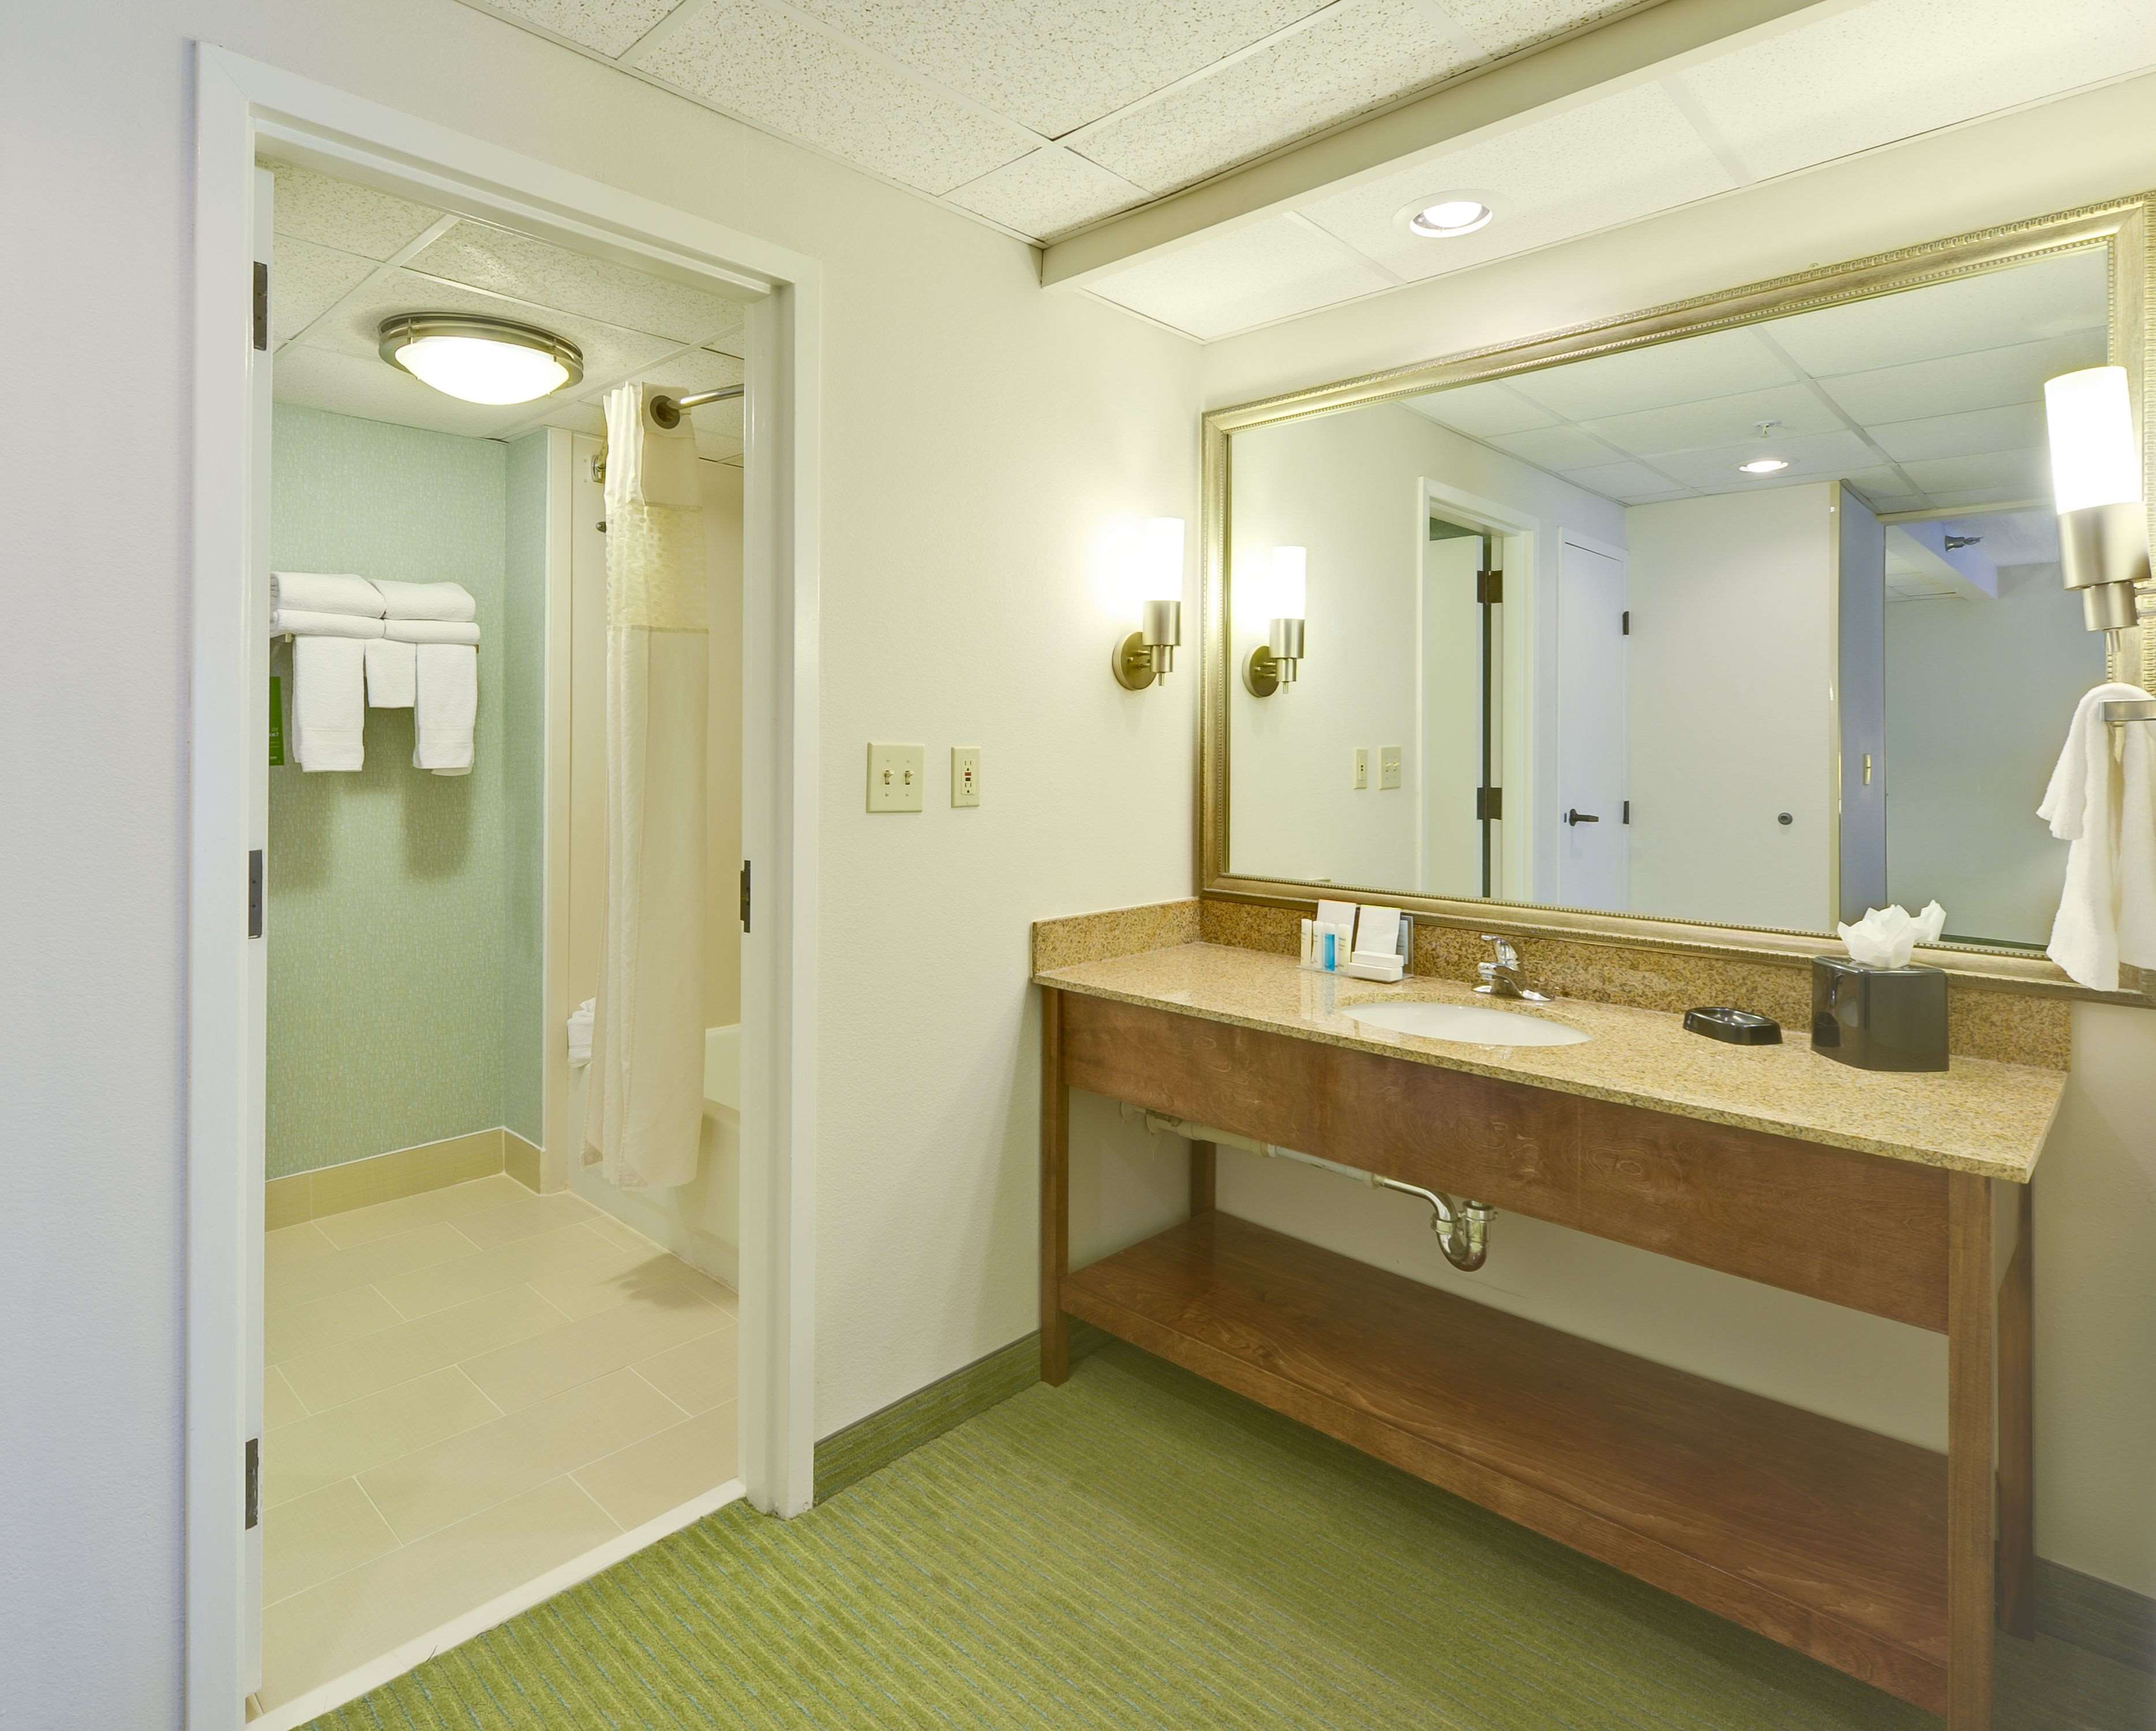 Hampton Inn & Suites Wilmington/Wrightsville Beach image 45